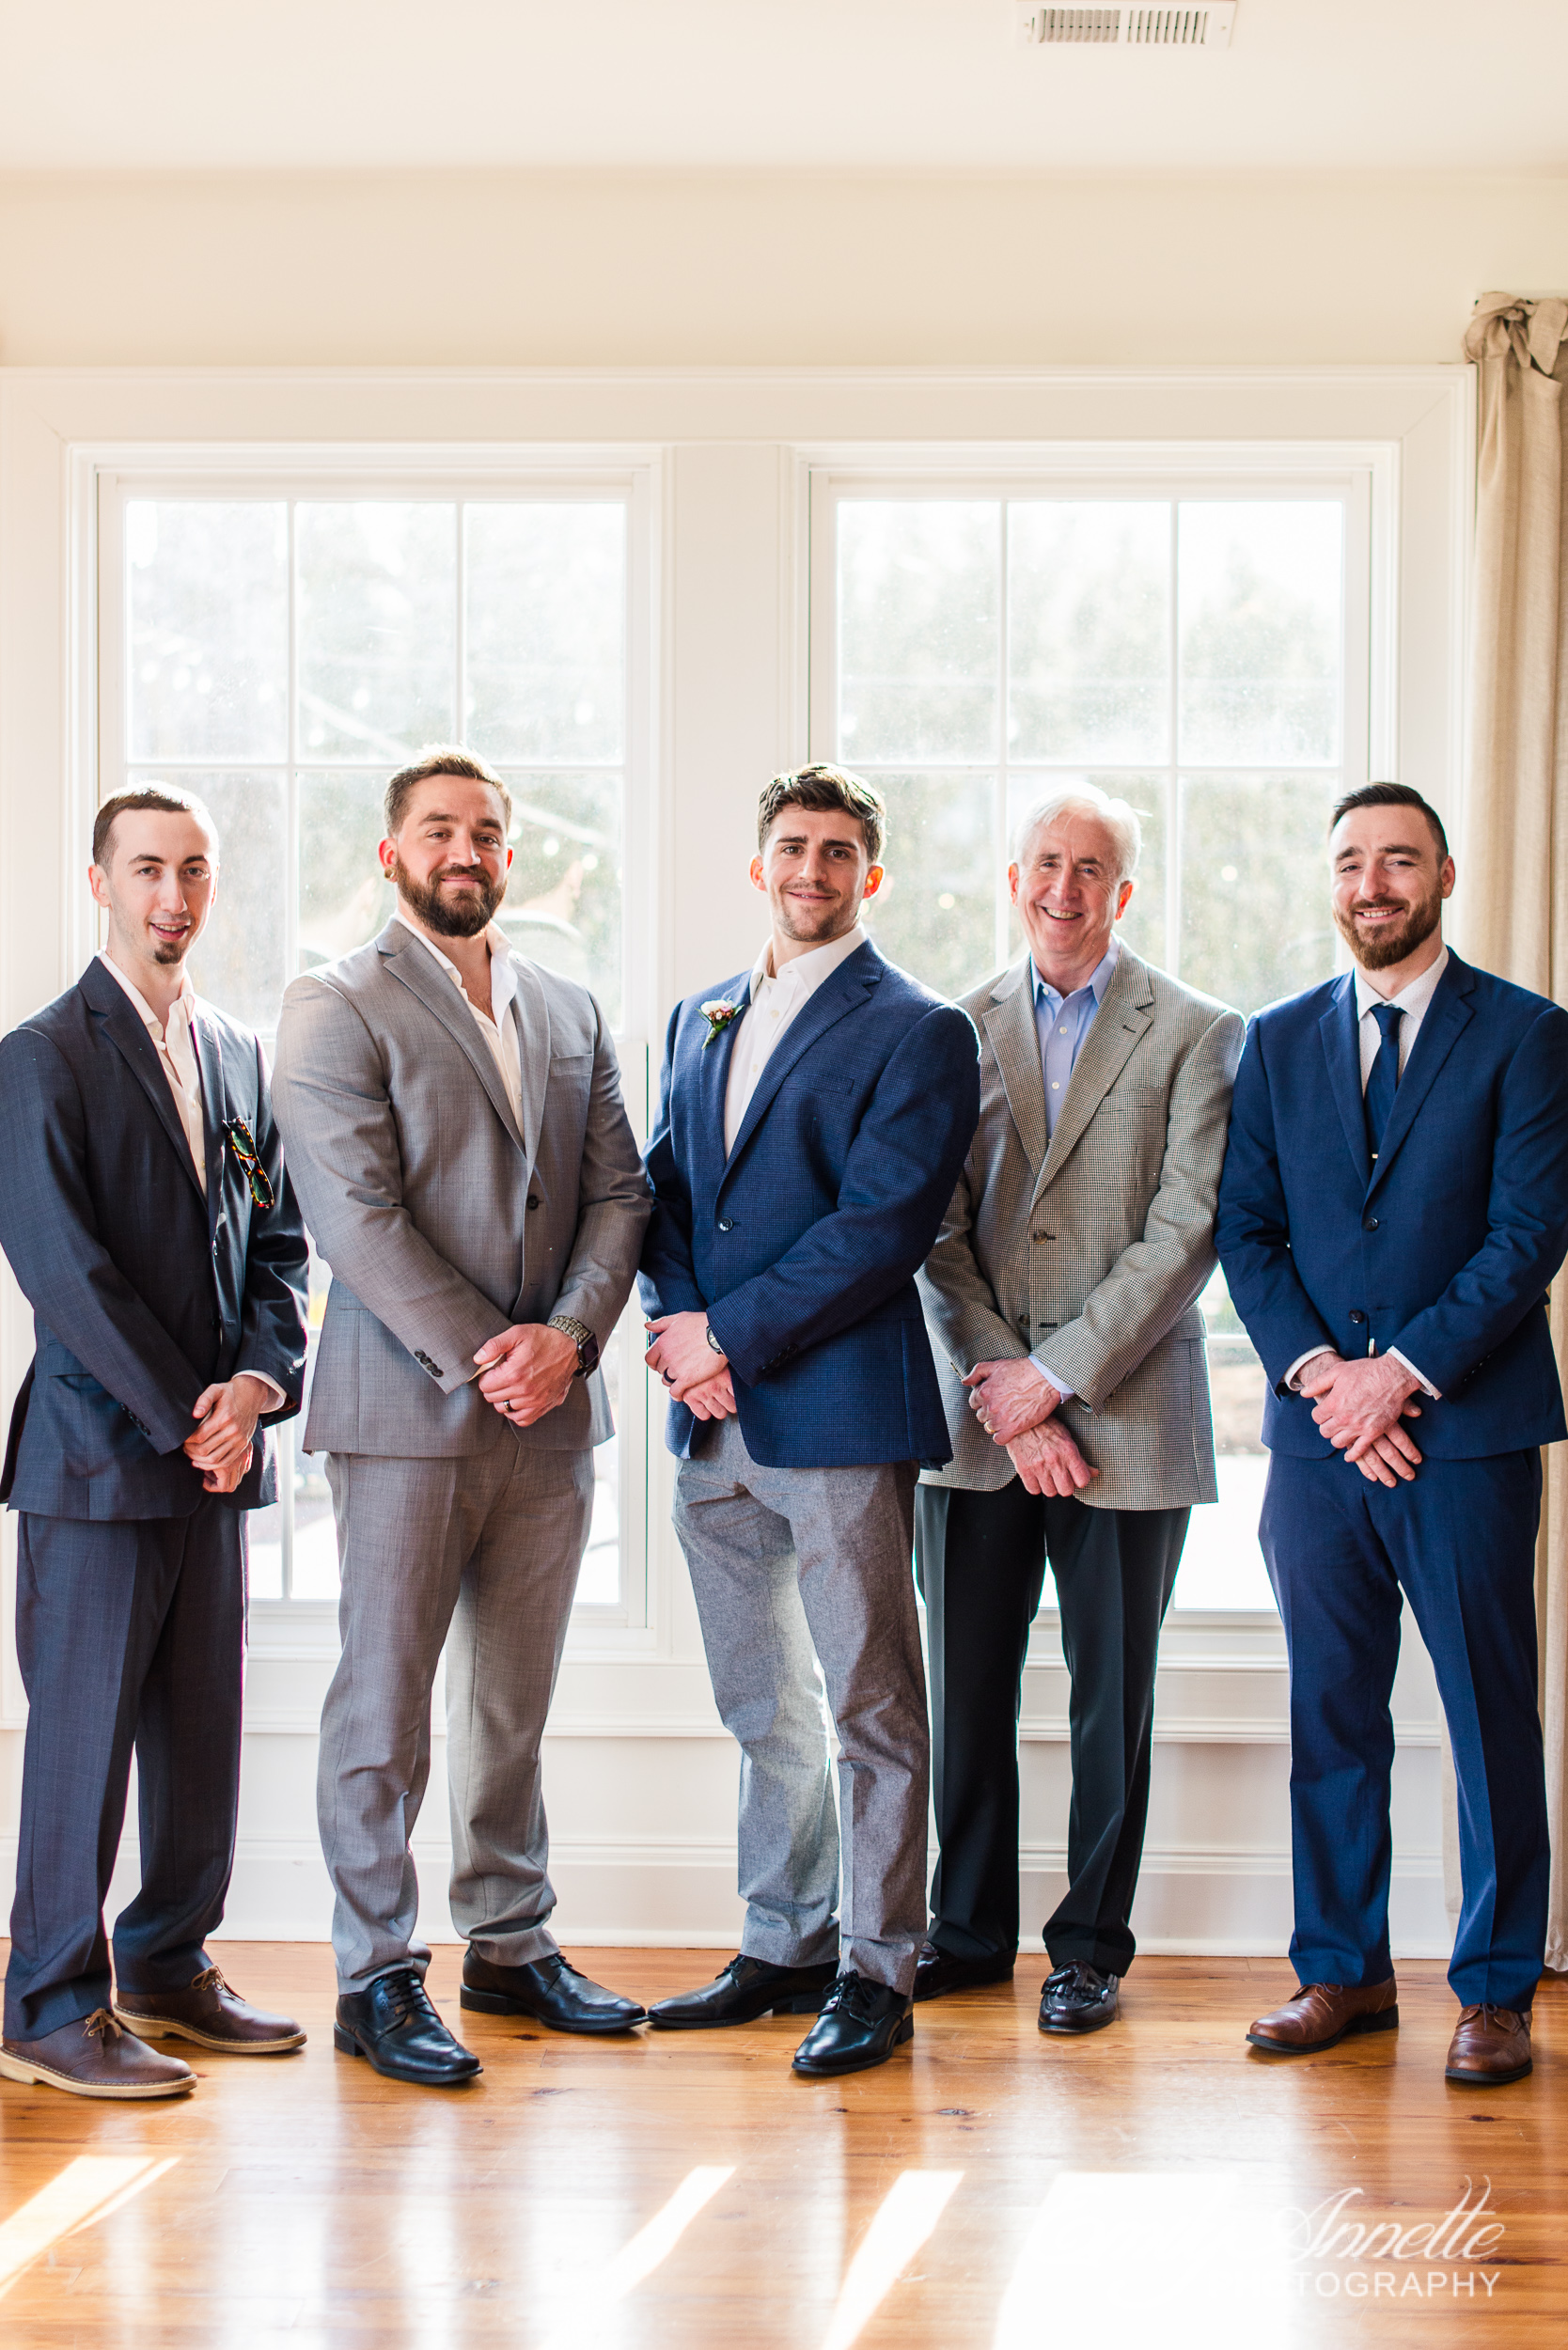 A portrait by the window of all the men at a small wedding at Fleetwood Farm Winery in Leesburg, Virginia